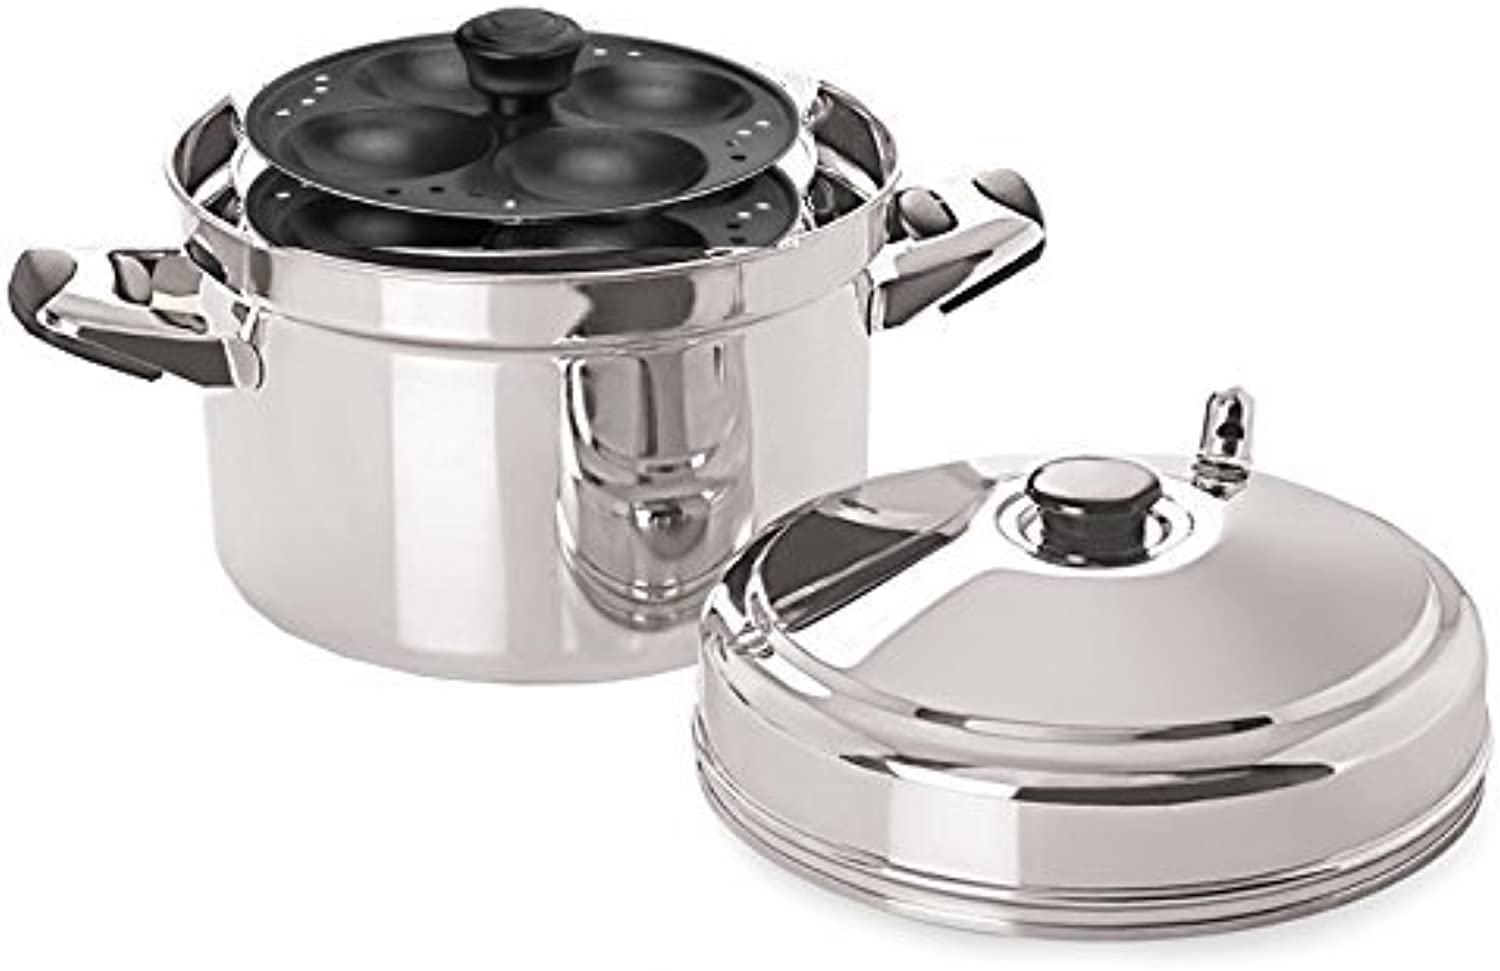 Tabakh IC-215 Stainless Steel Cooker with Non-Stick 5-Rack Idly Stand, Makes 20, Silver